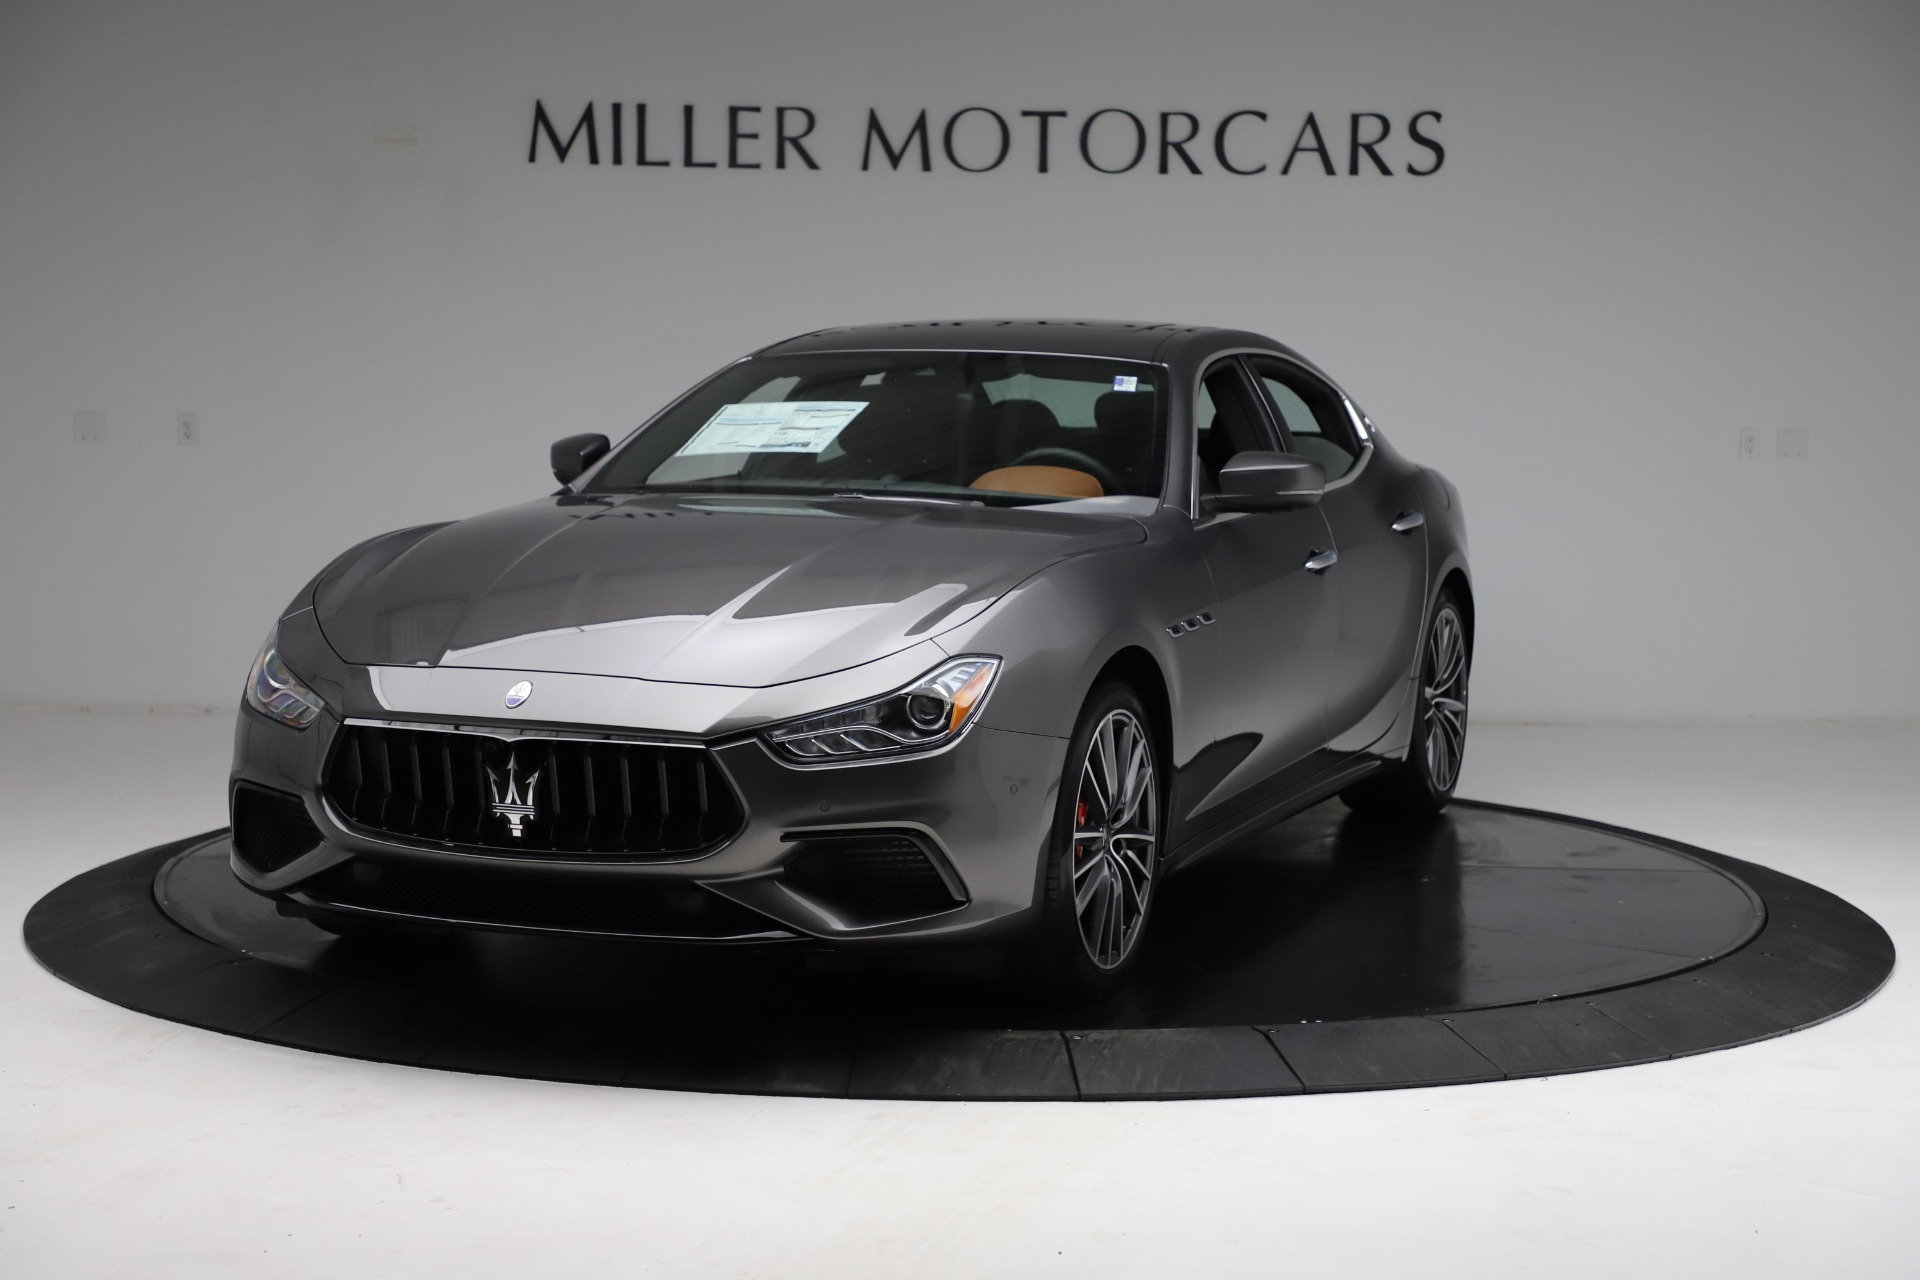 New 2021 Maserati Ghibli S Q4 for sale $90,525 at Bentley Greenwich in Greenwich CT 06830 1